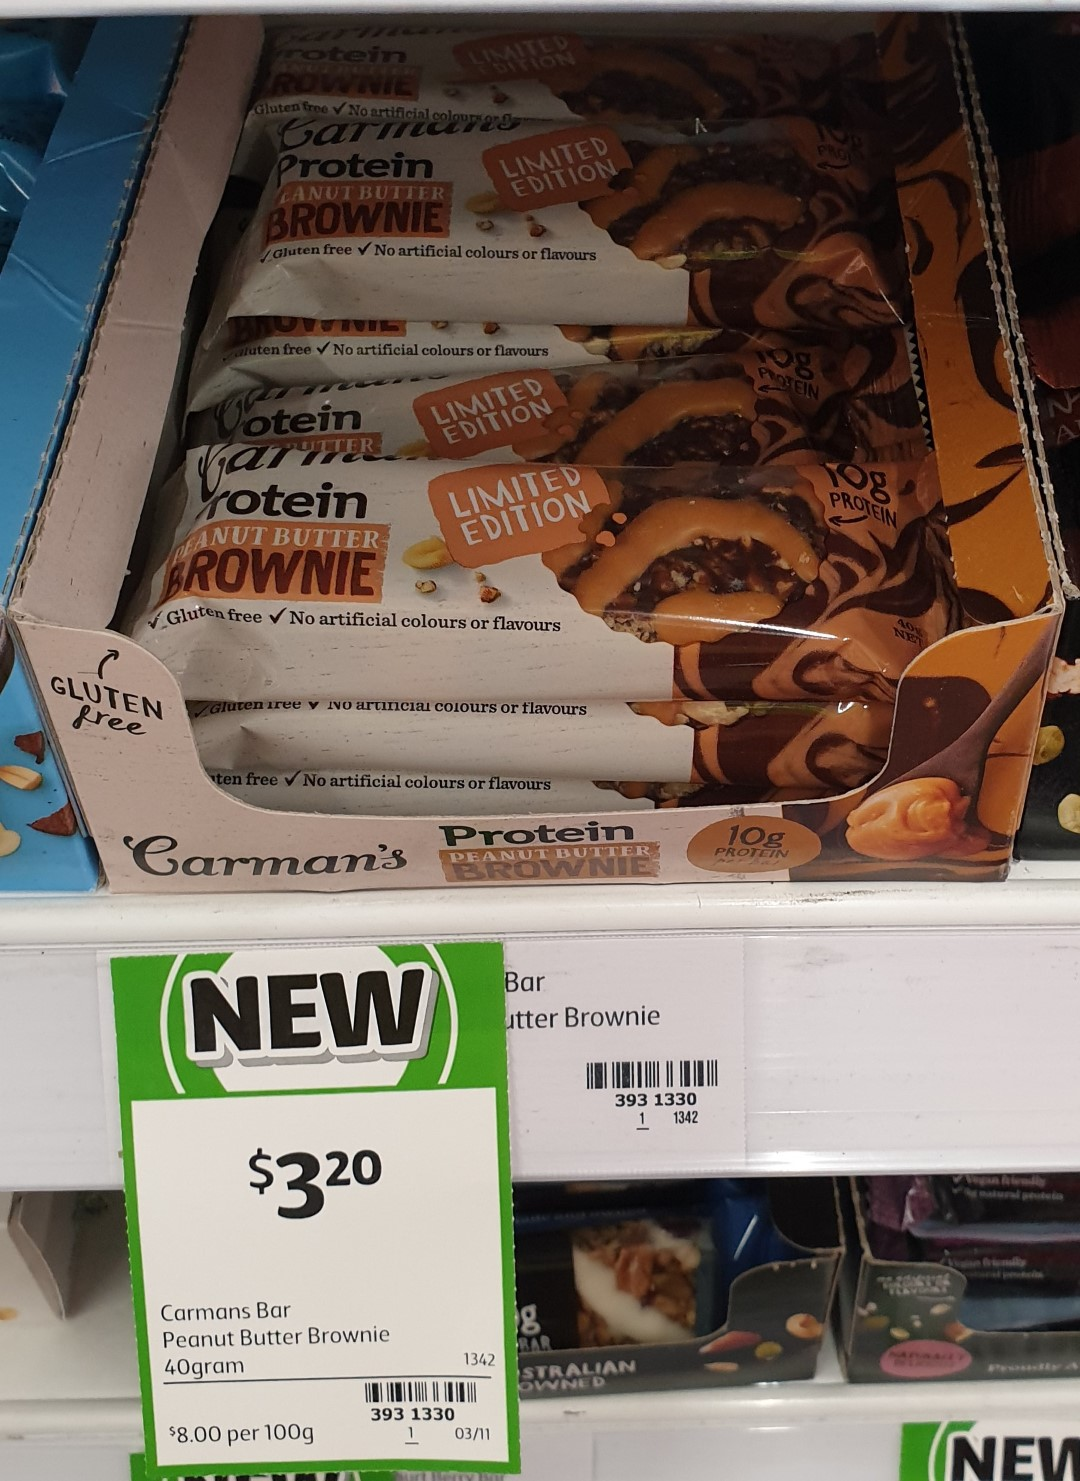 New Products Australia Collection Of New Products On The Shelf At Coles And Woolworths Supermarkets Page 13